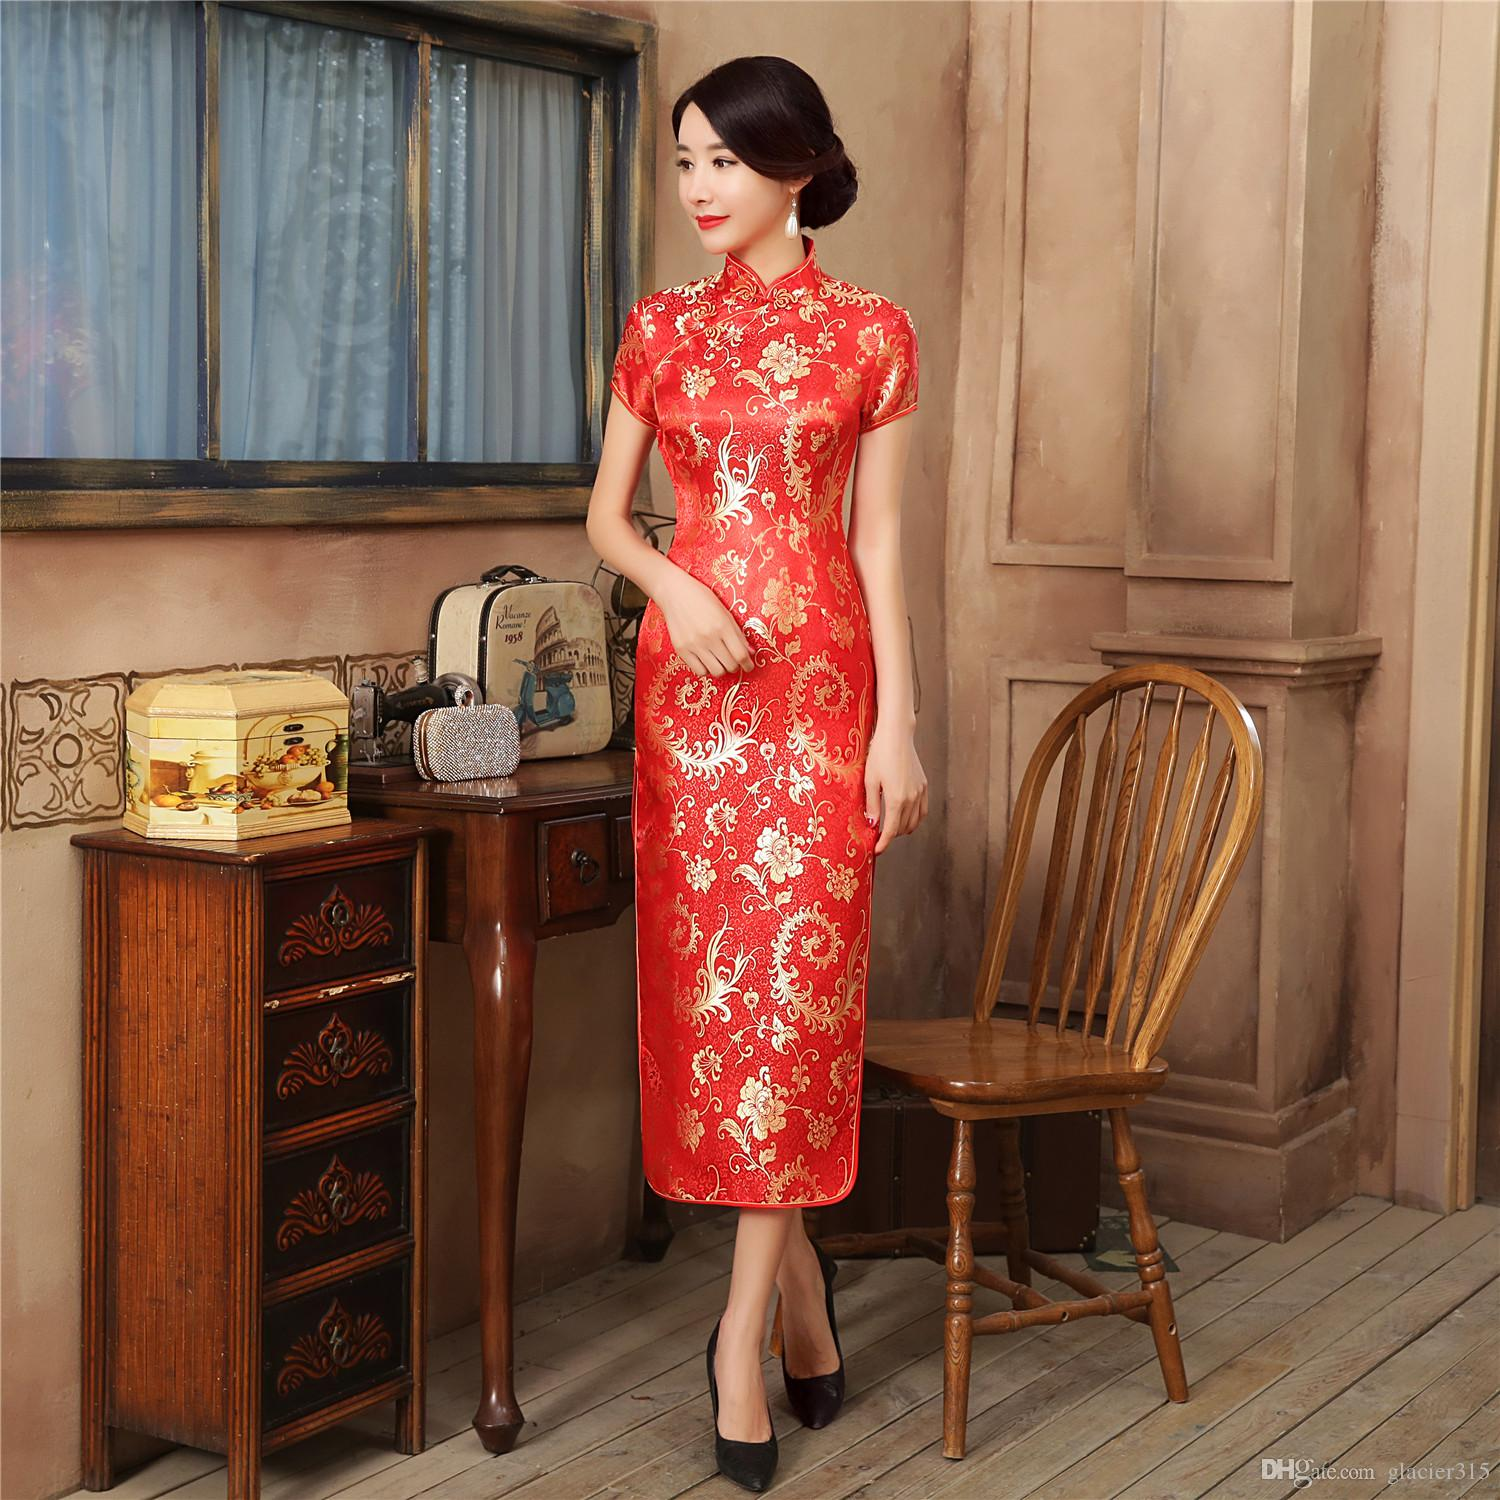 shanghai story chinese traditional clothing chinese style. Black Bedroom Furniture Sets. Home Design Ideas